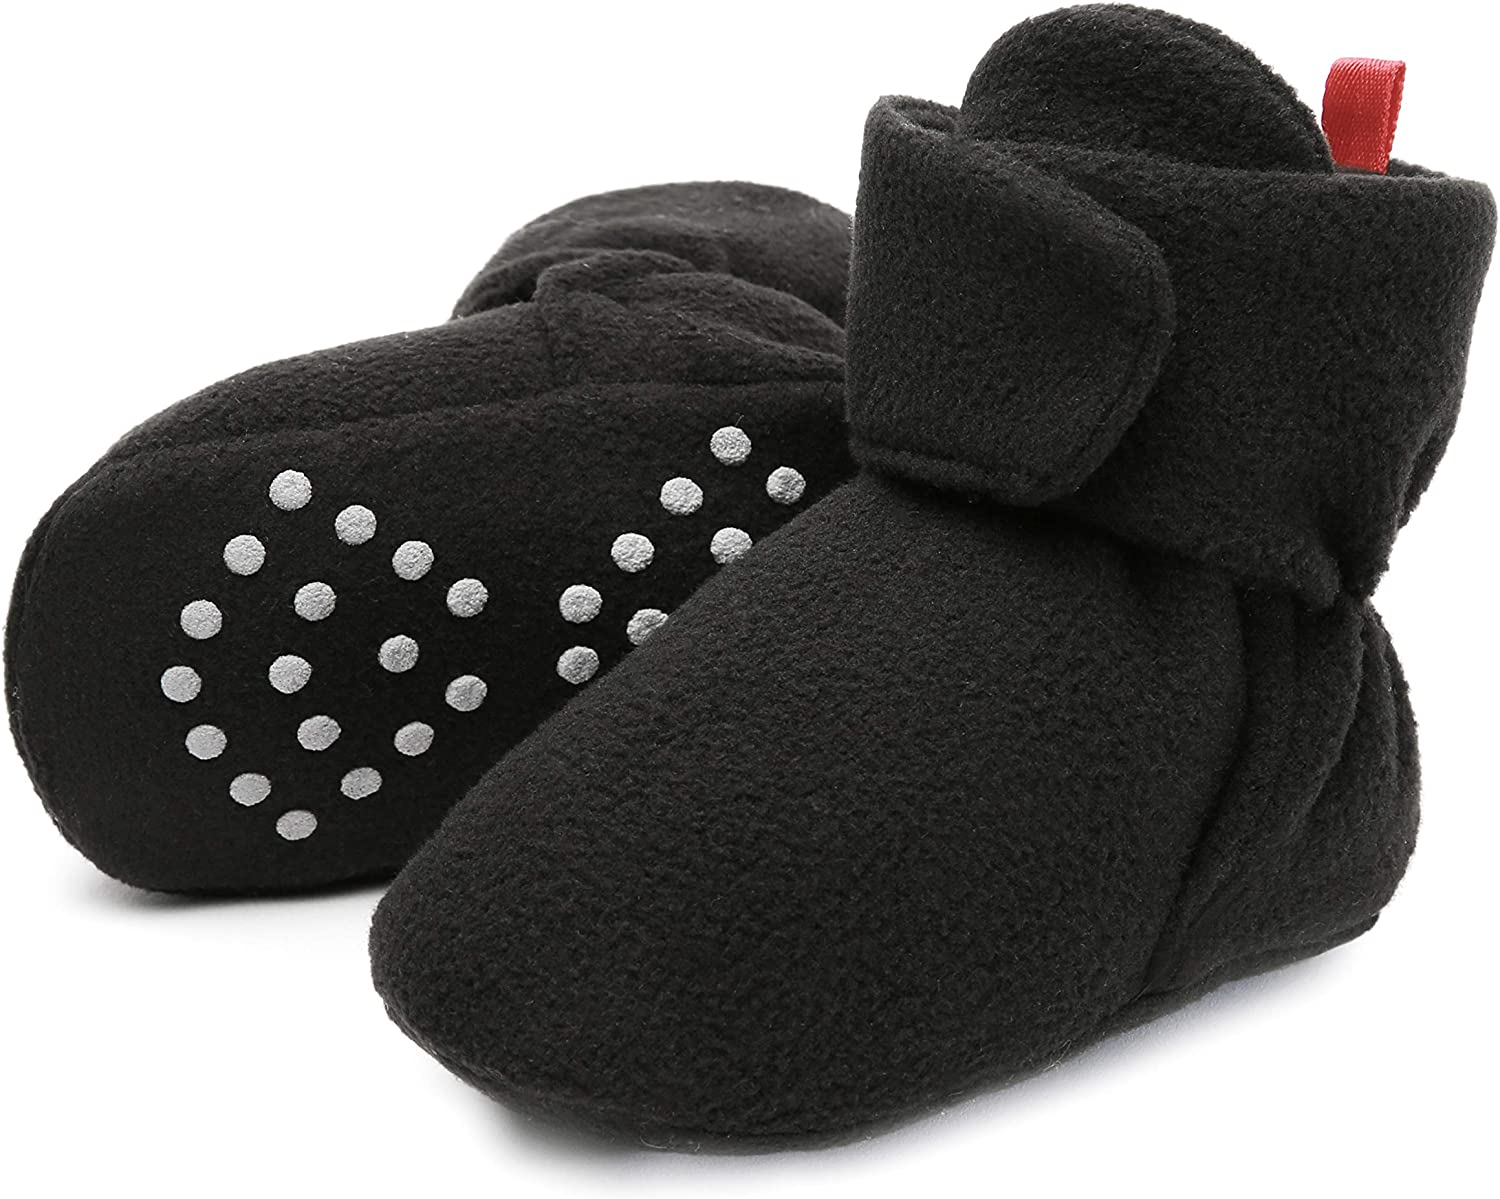 Baby Fleece Booties Newborn Unisex Booties Non-Slip Newborn Toddler First Walkers Warm Shoes House Slippers for Baby Boys & Baby Girls Toddlers